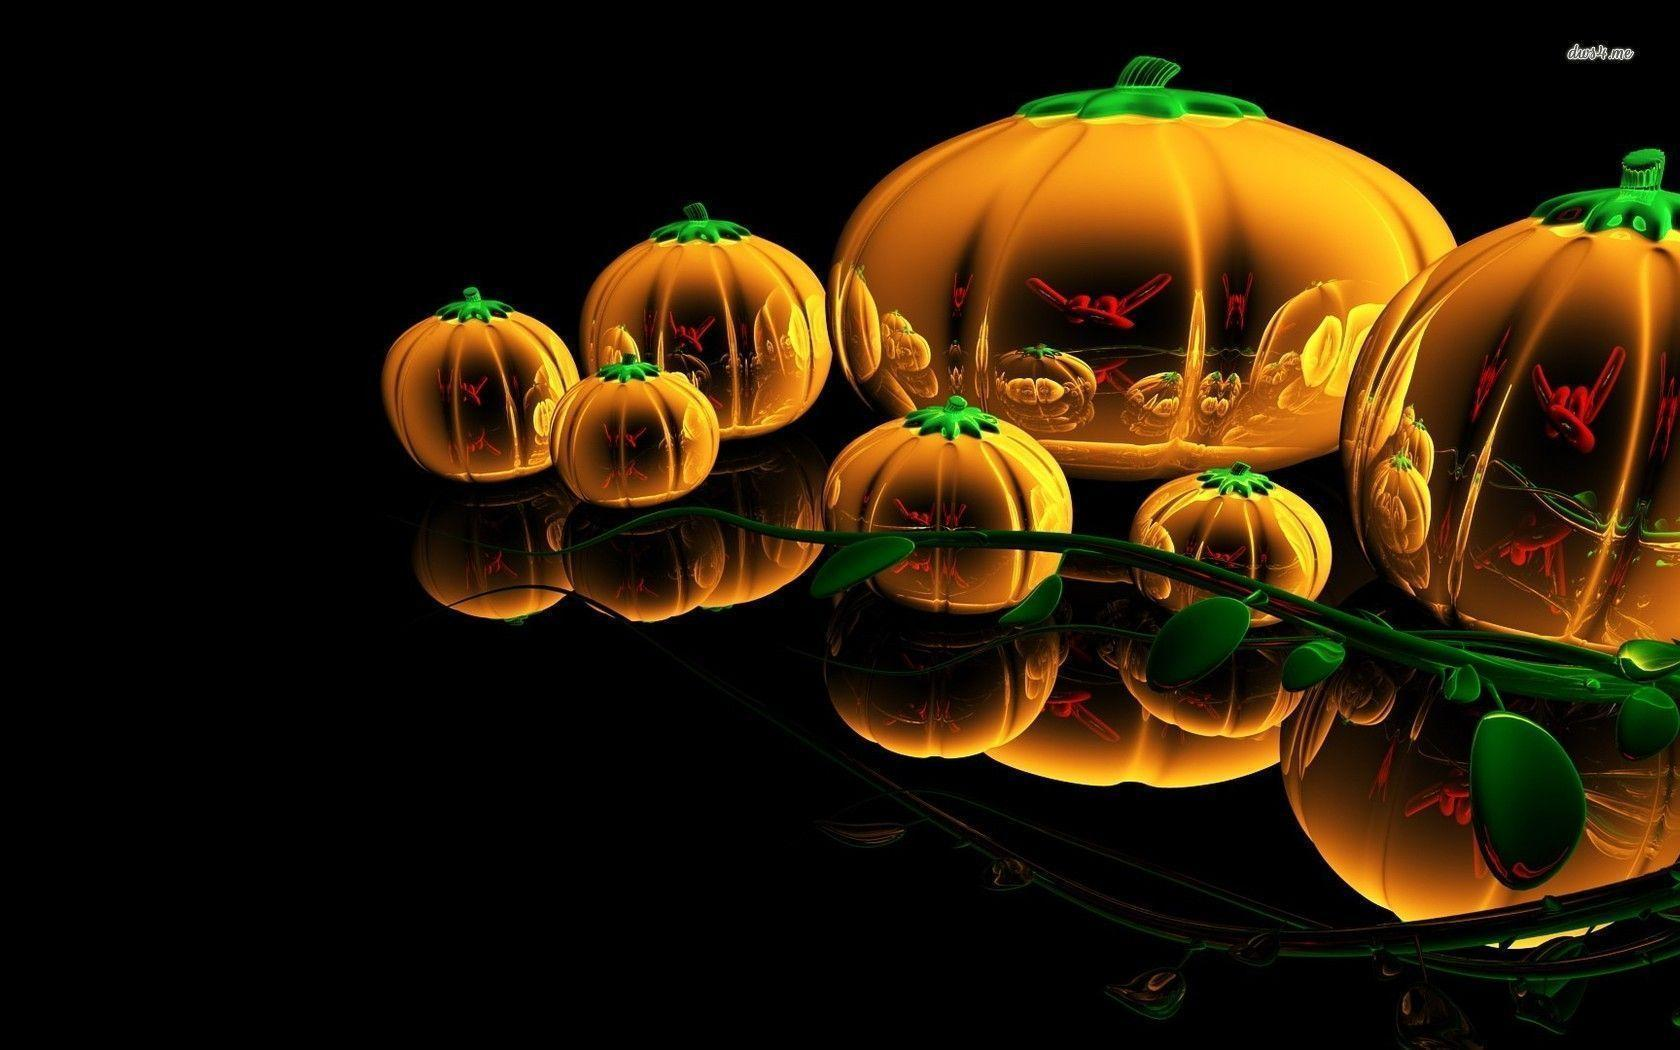 3D Pumpkini Halloween Wallpaper